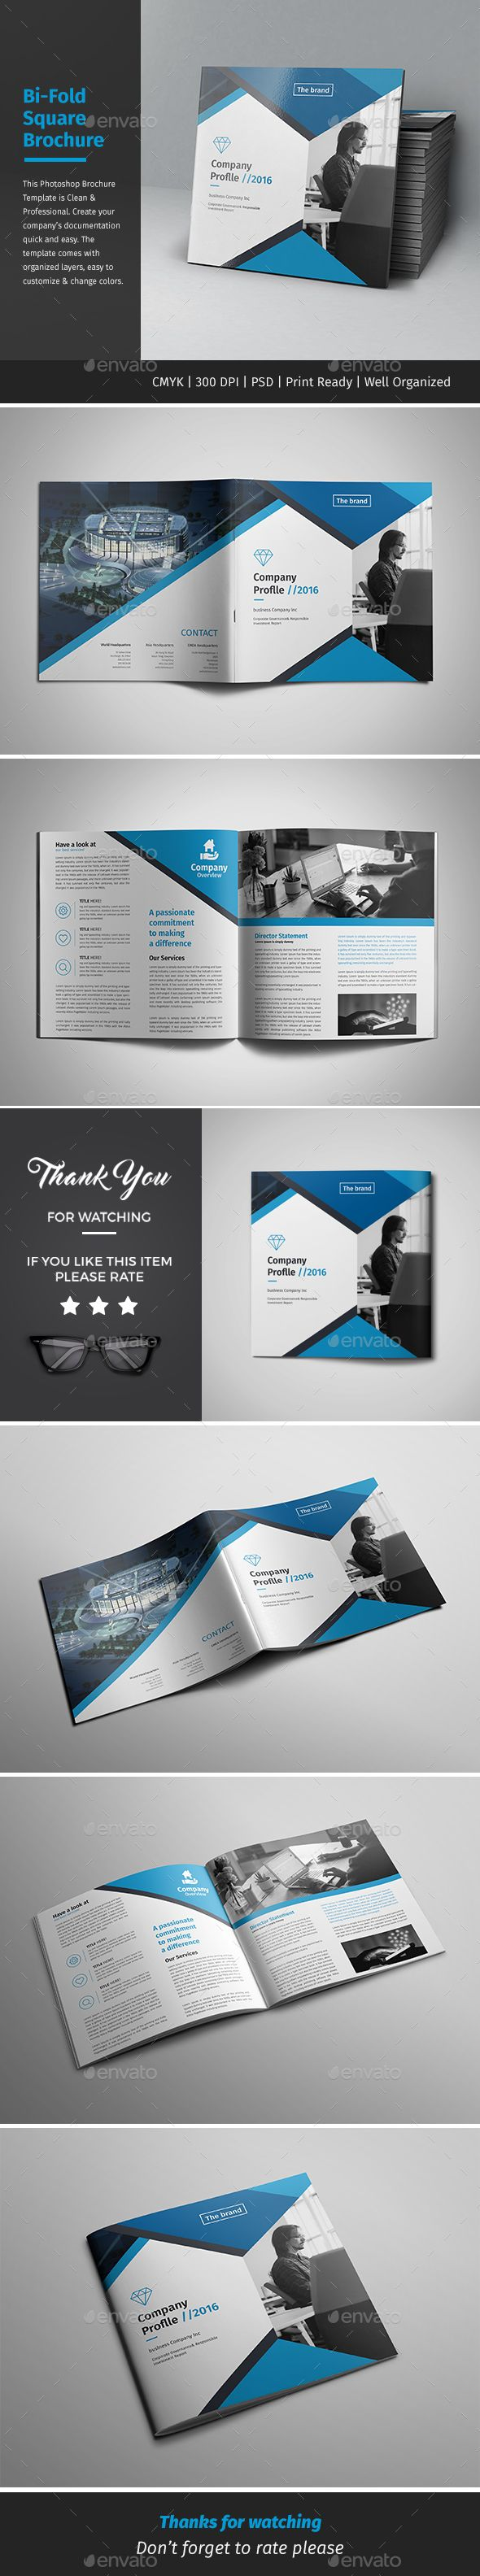 Corporate Bi-fold Square Brochure Template PSD